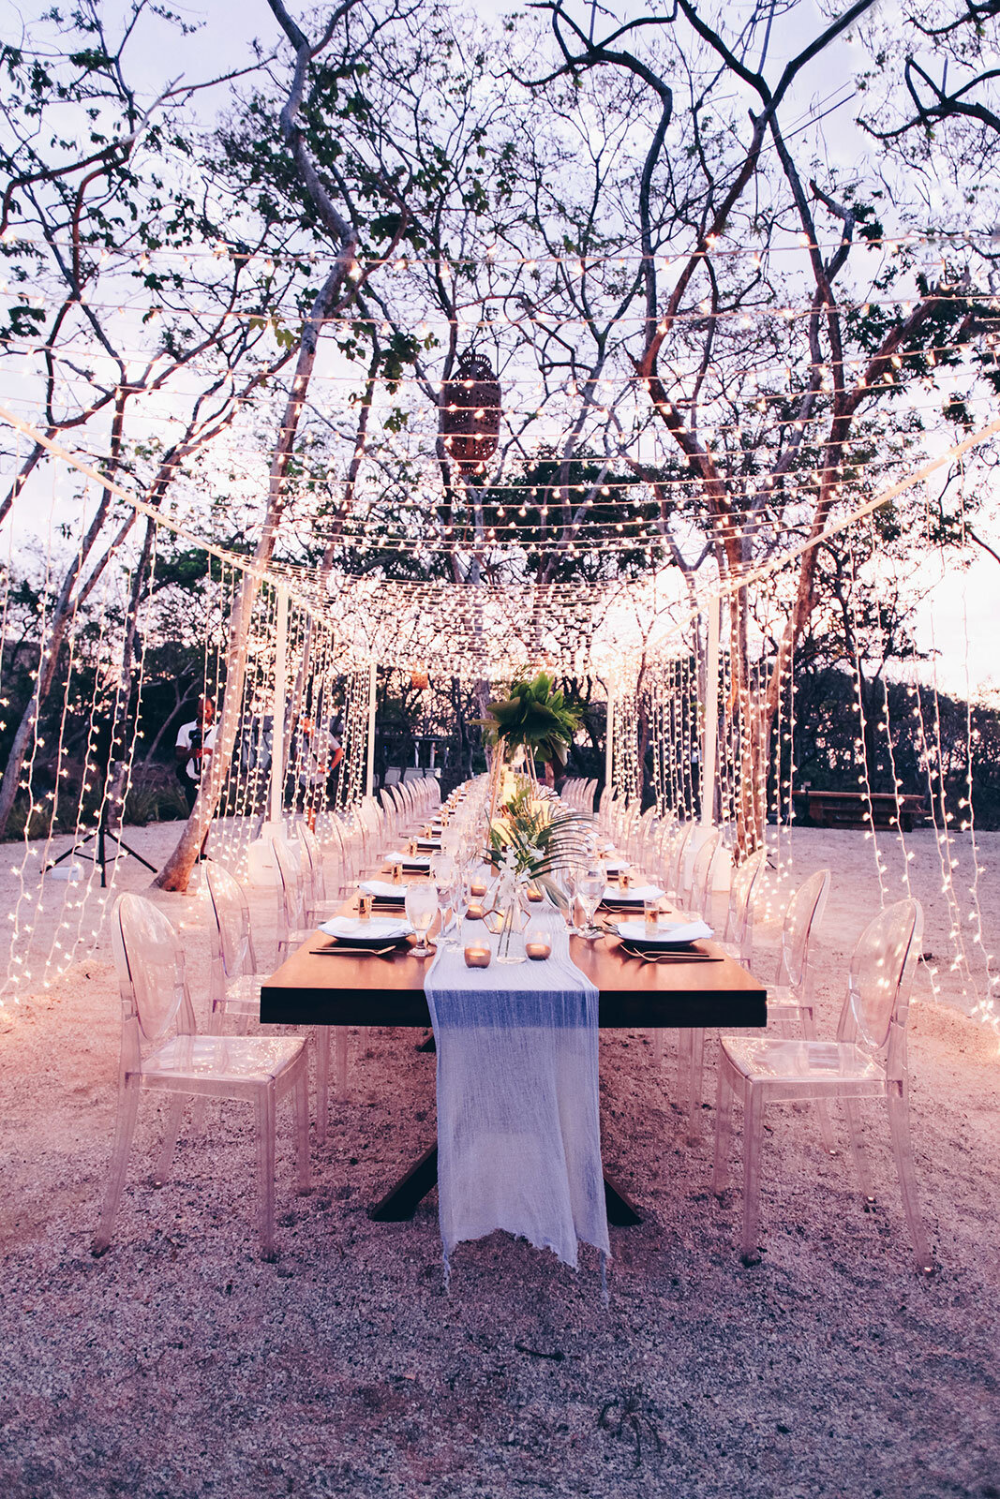 Can you imagine eating your wedding dinner under these